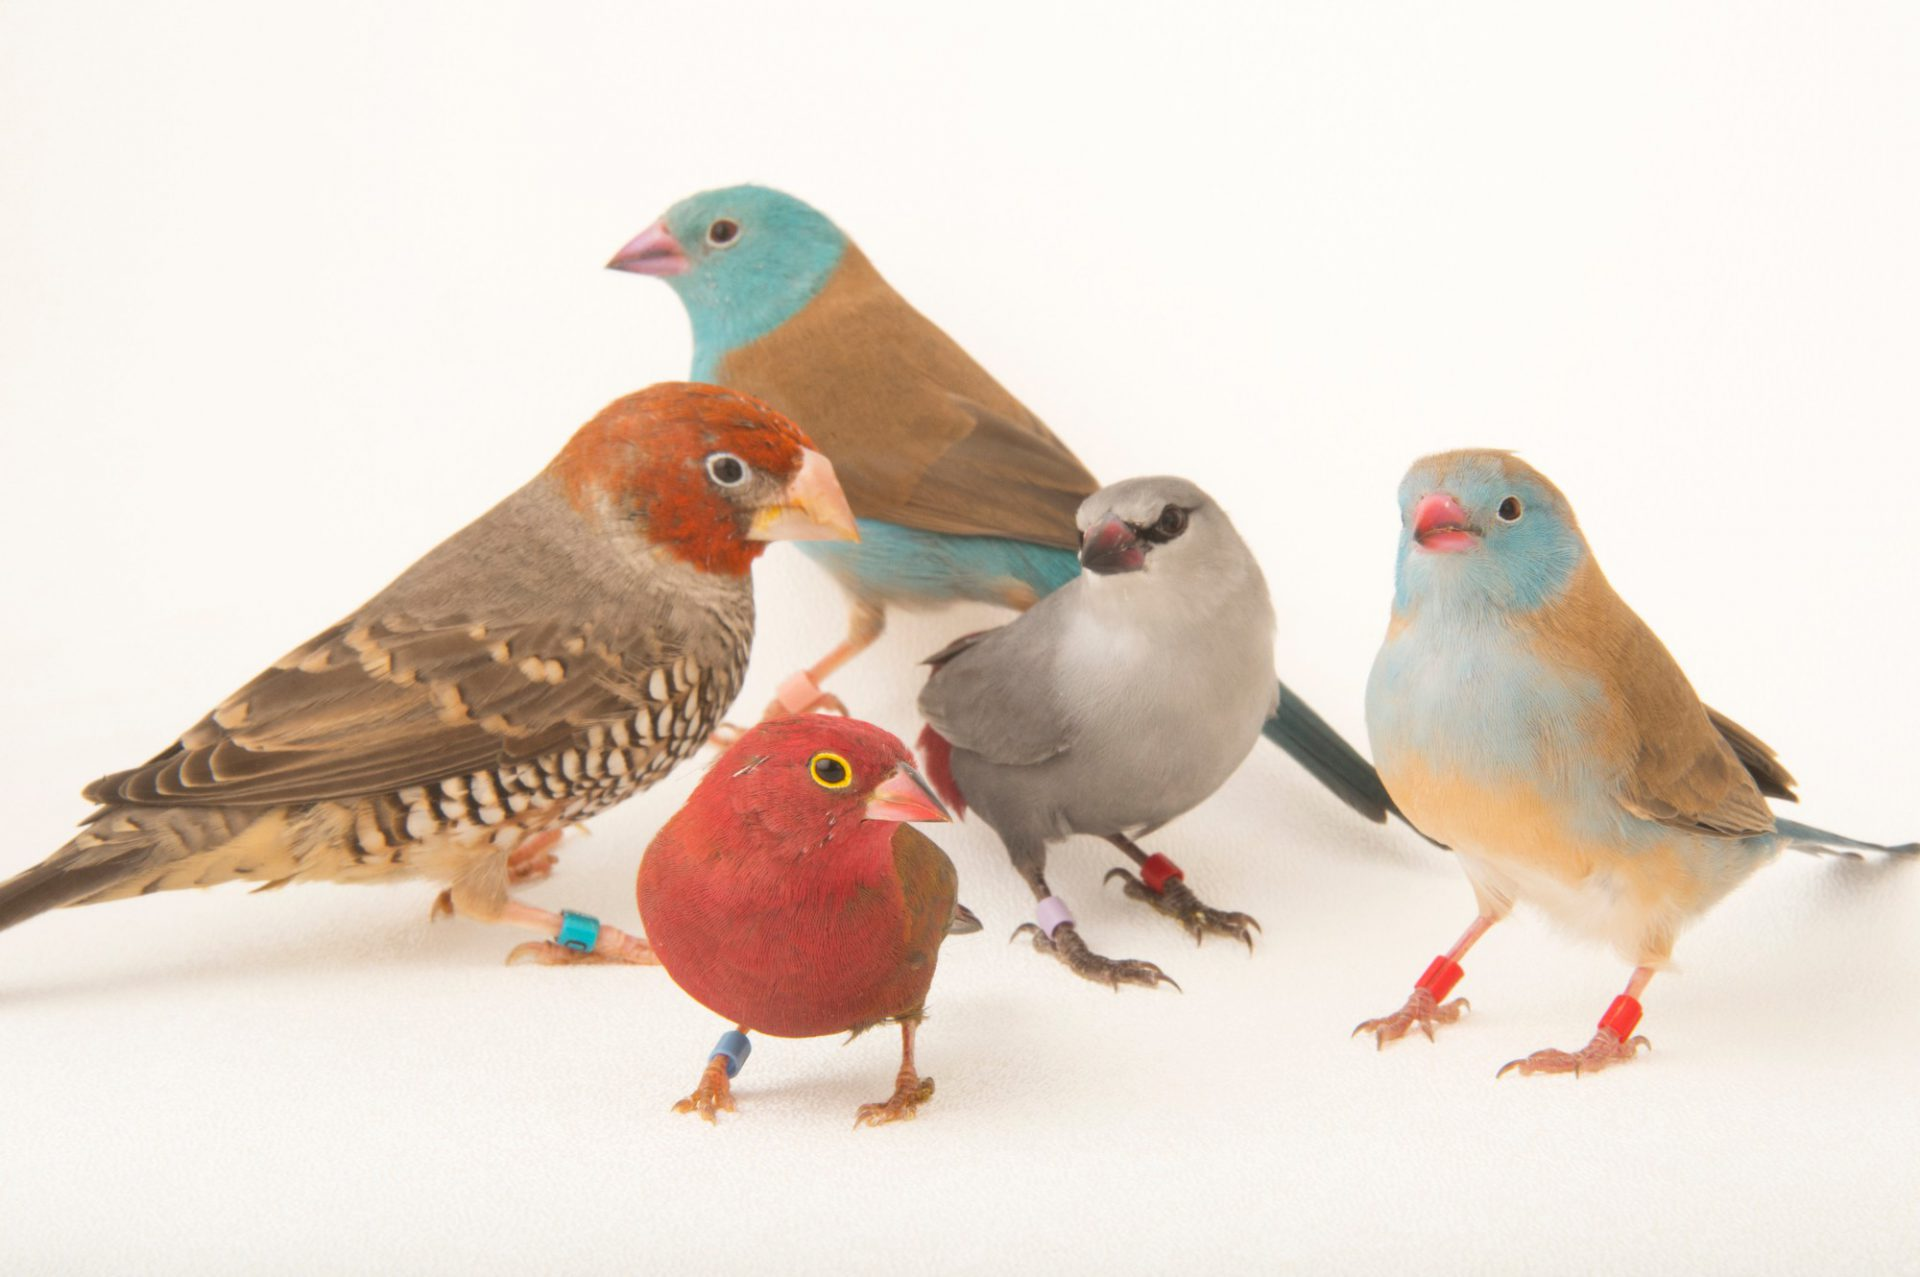 Picture of various finches including two blue-headed cordon-bleus (Uraeginthus cyanocephala), a lavender waxbill (Estrilda caerulescens), a red-headed Finch (Amadina erythrocephala) and a red-billed firefinch (Lagonosticta senegala) at the Tulsa Zoo.